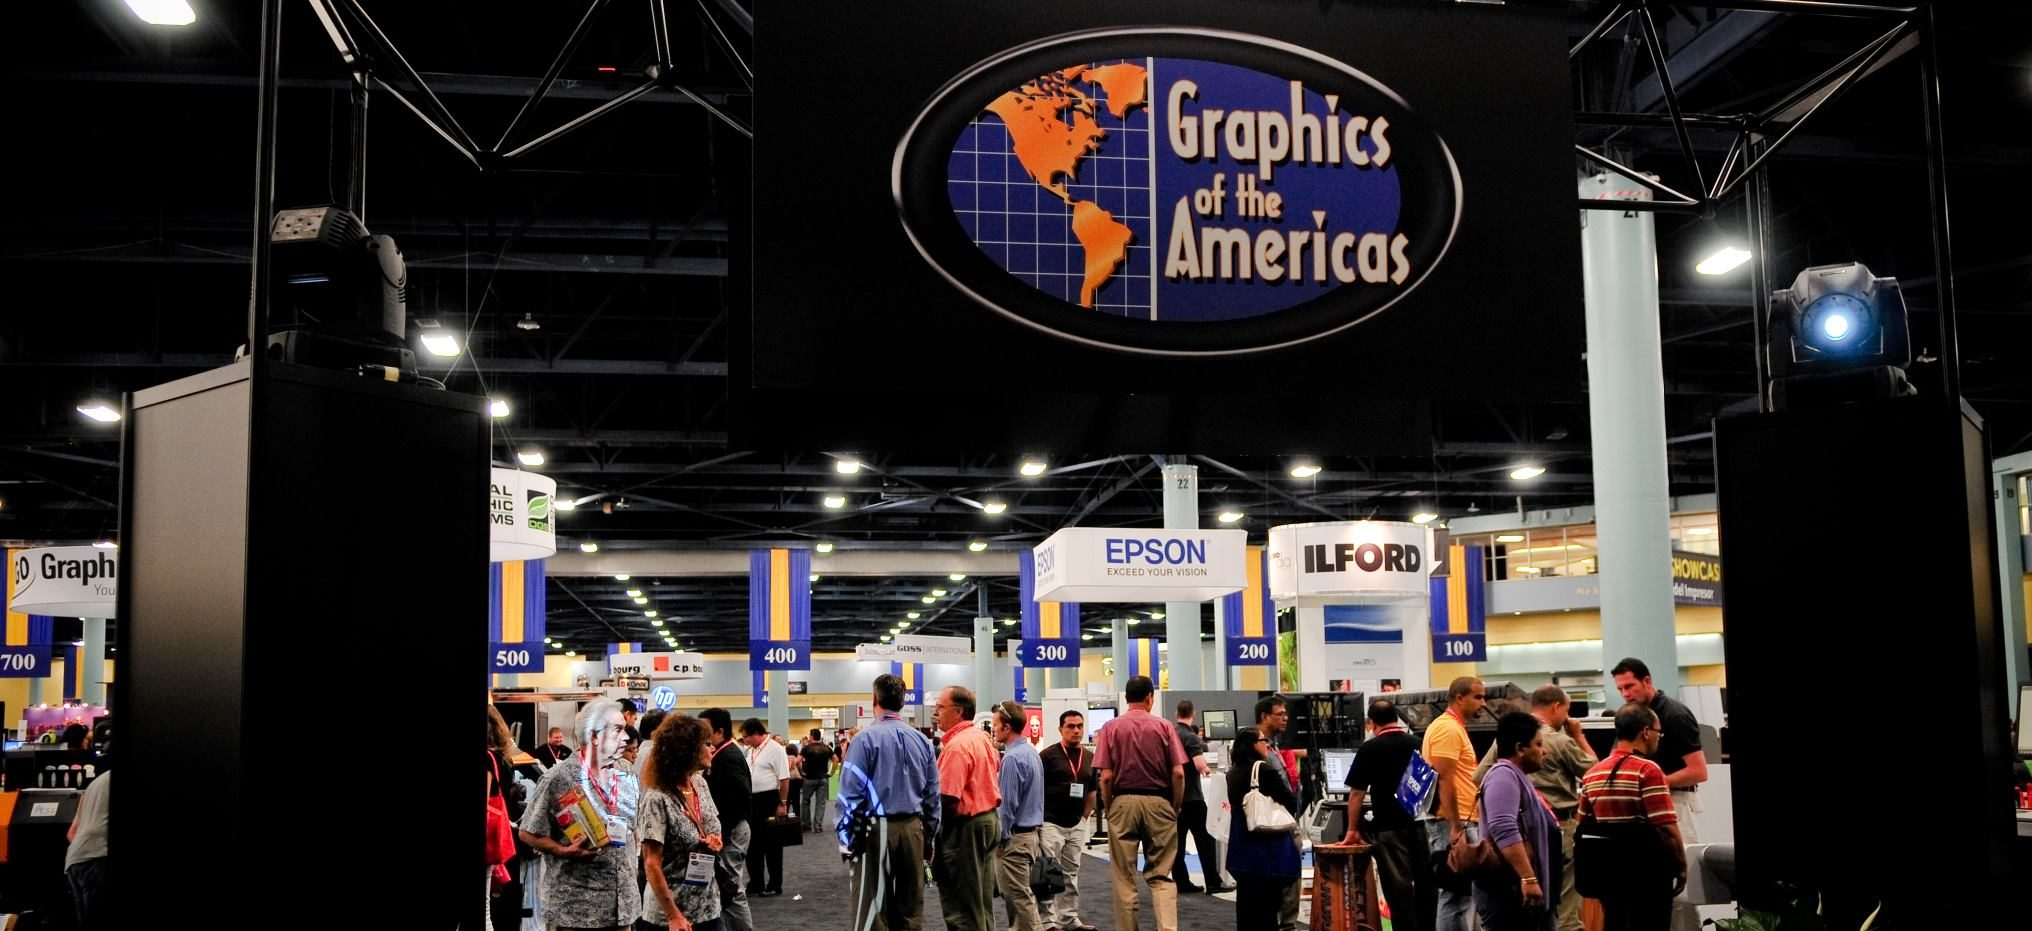 GOA Expo, Graphics of the Americas